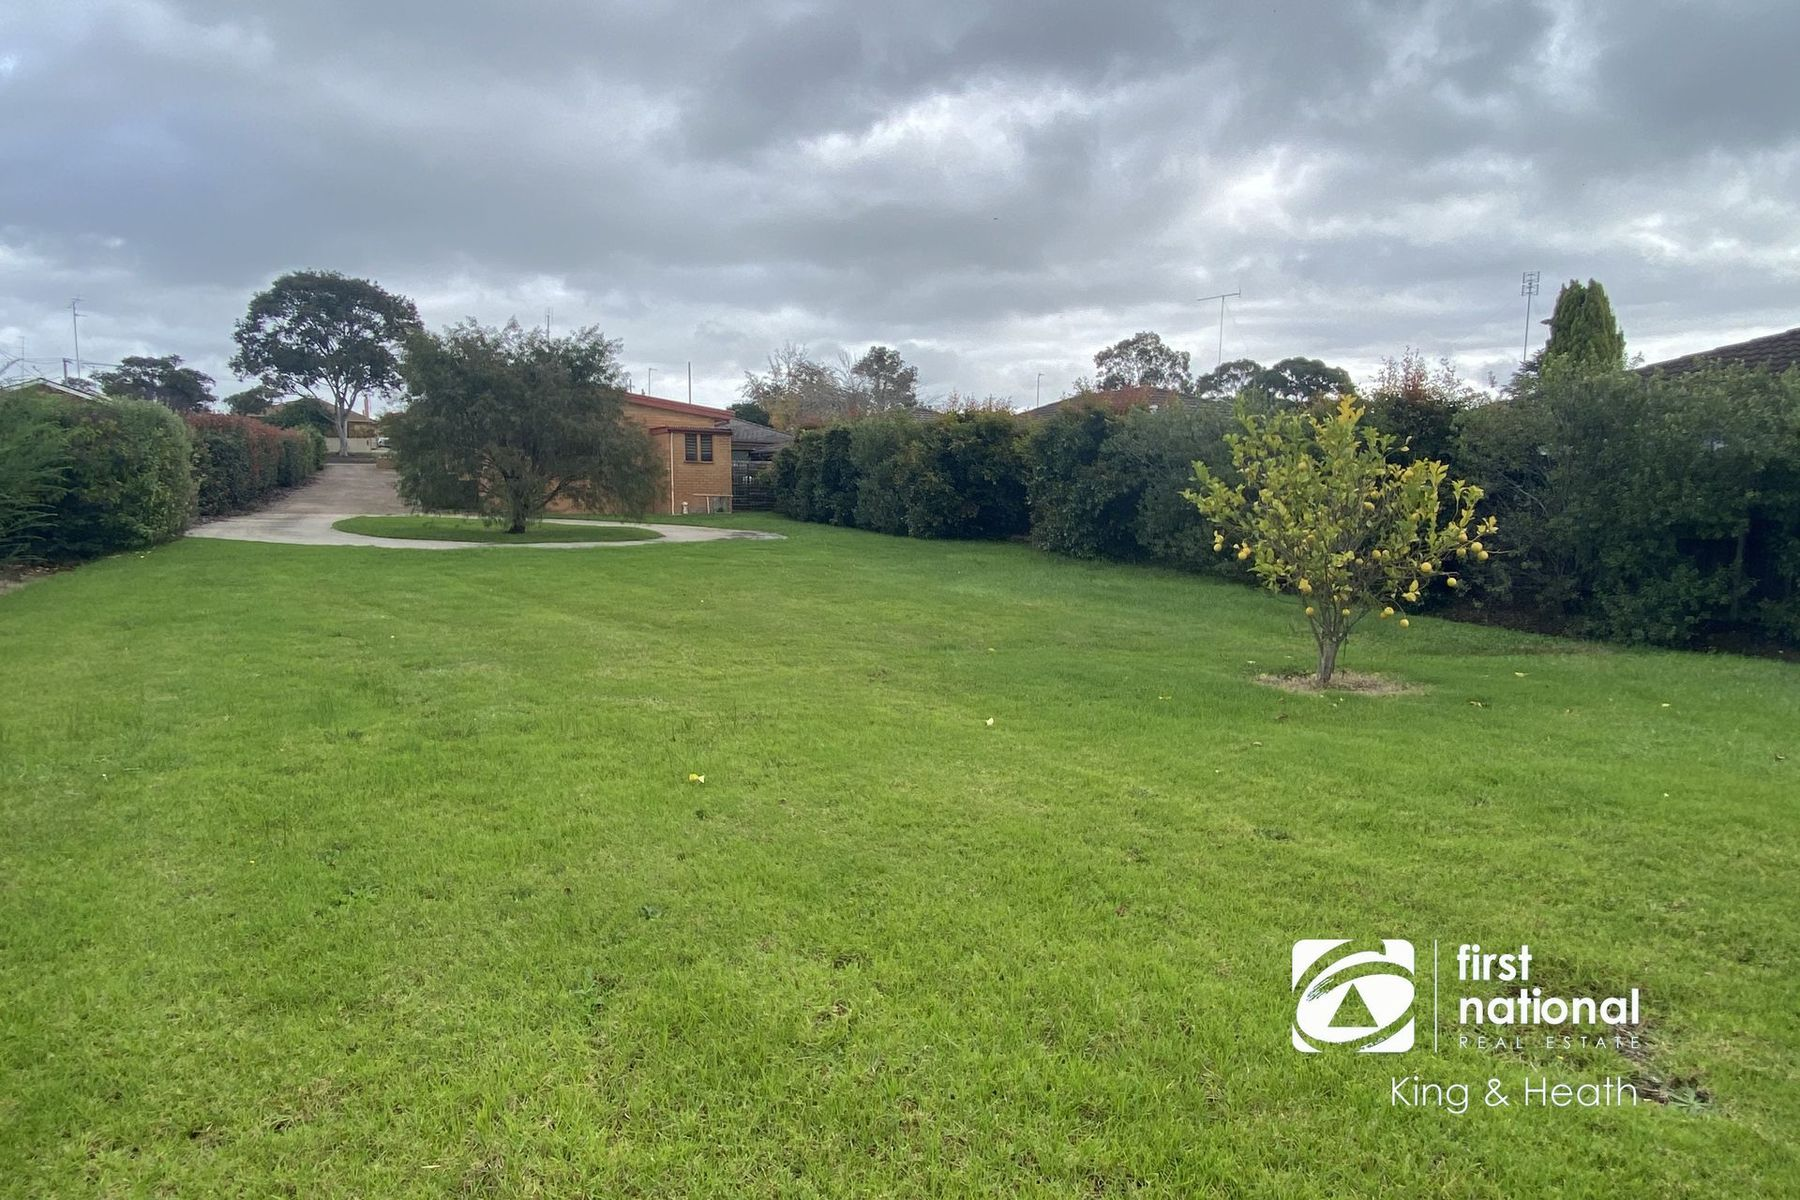 3/99 Day Street, Bairnsdale, VIC 3875